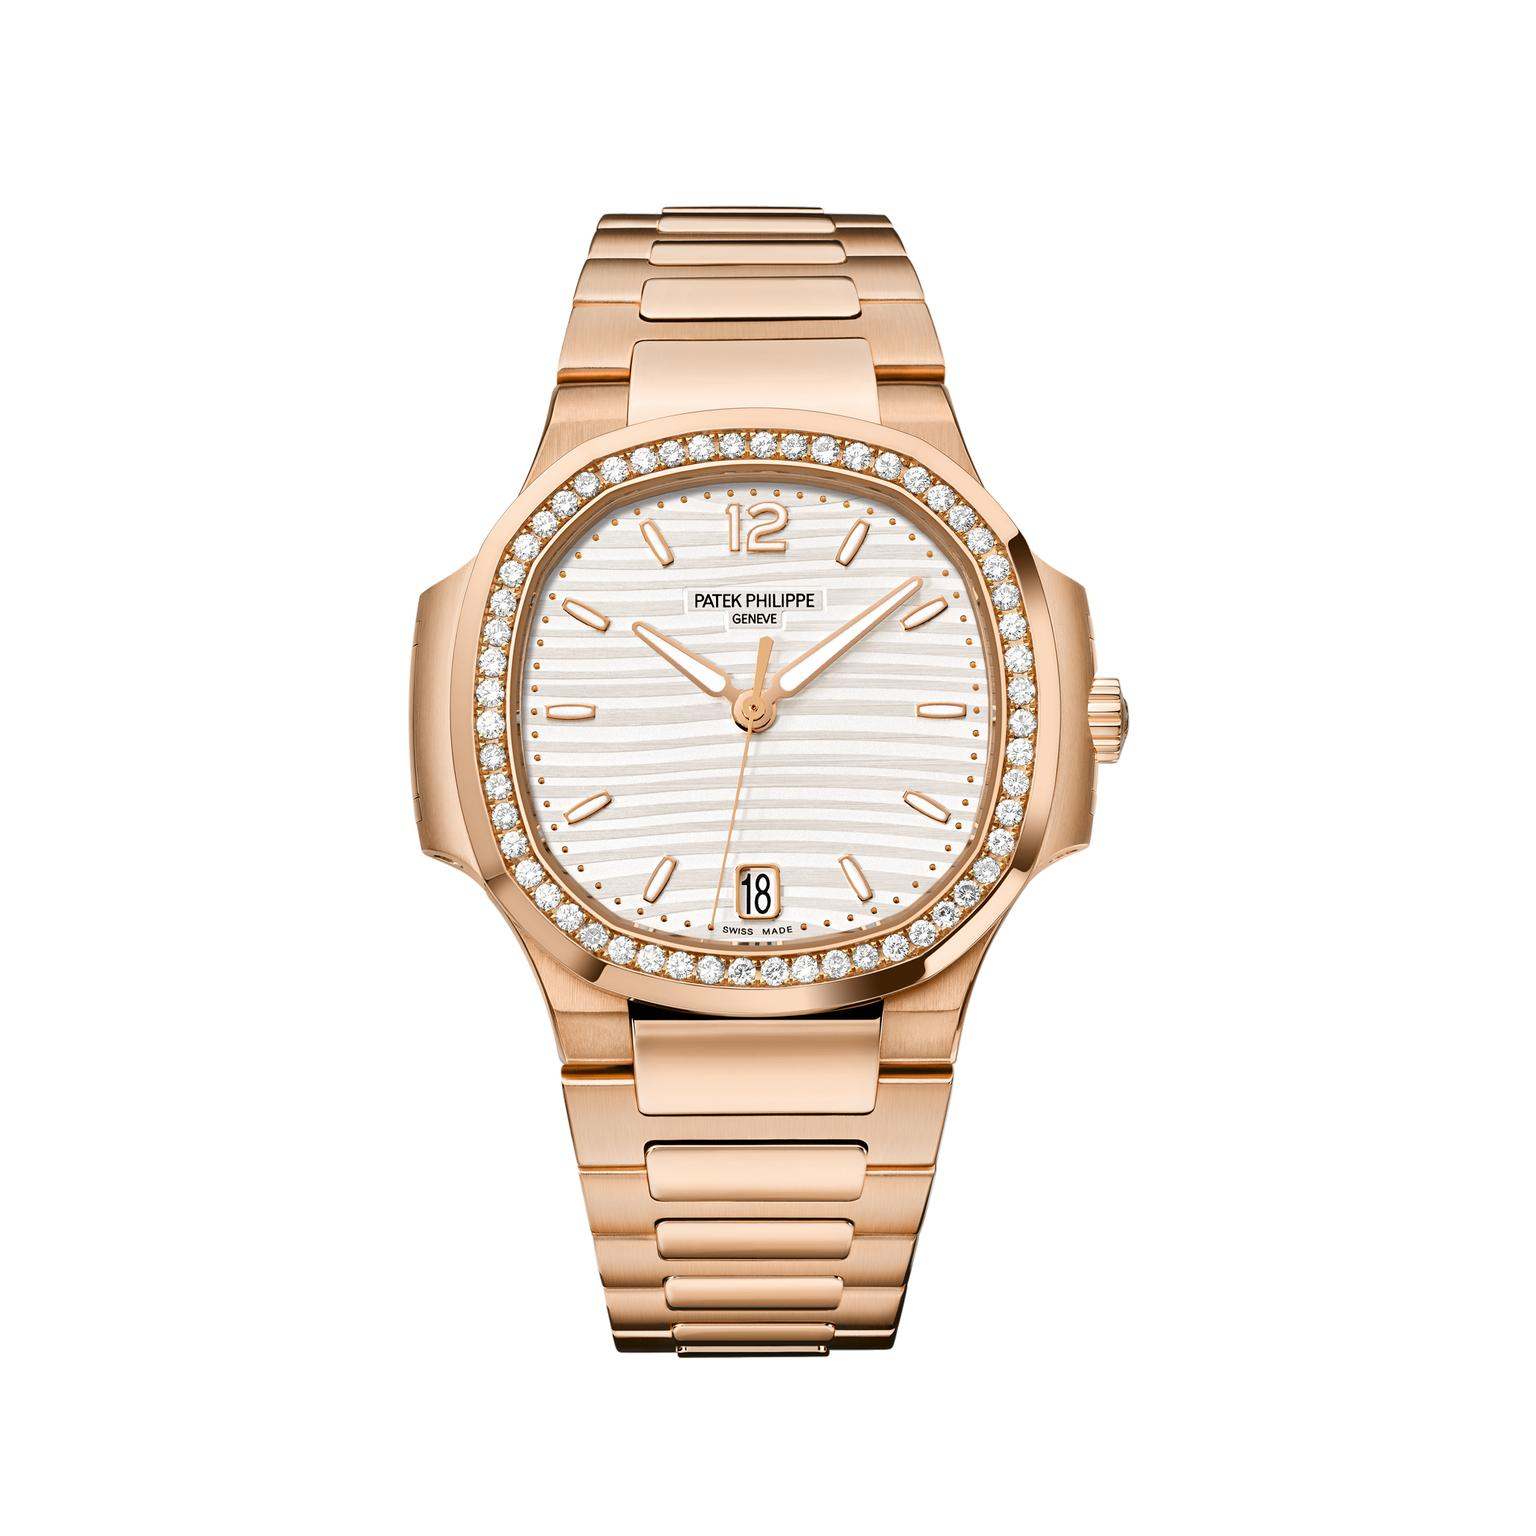 Patek Philippe Nautilus rose gold, white dial